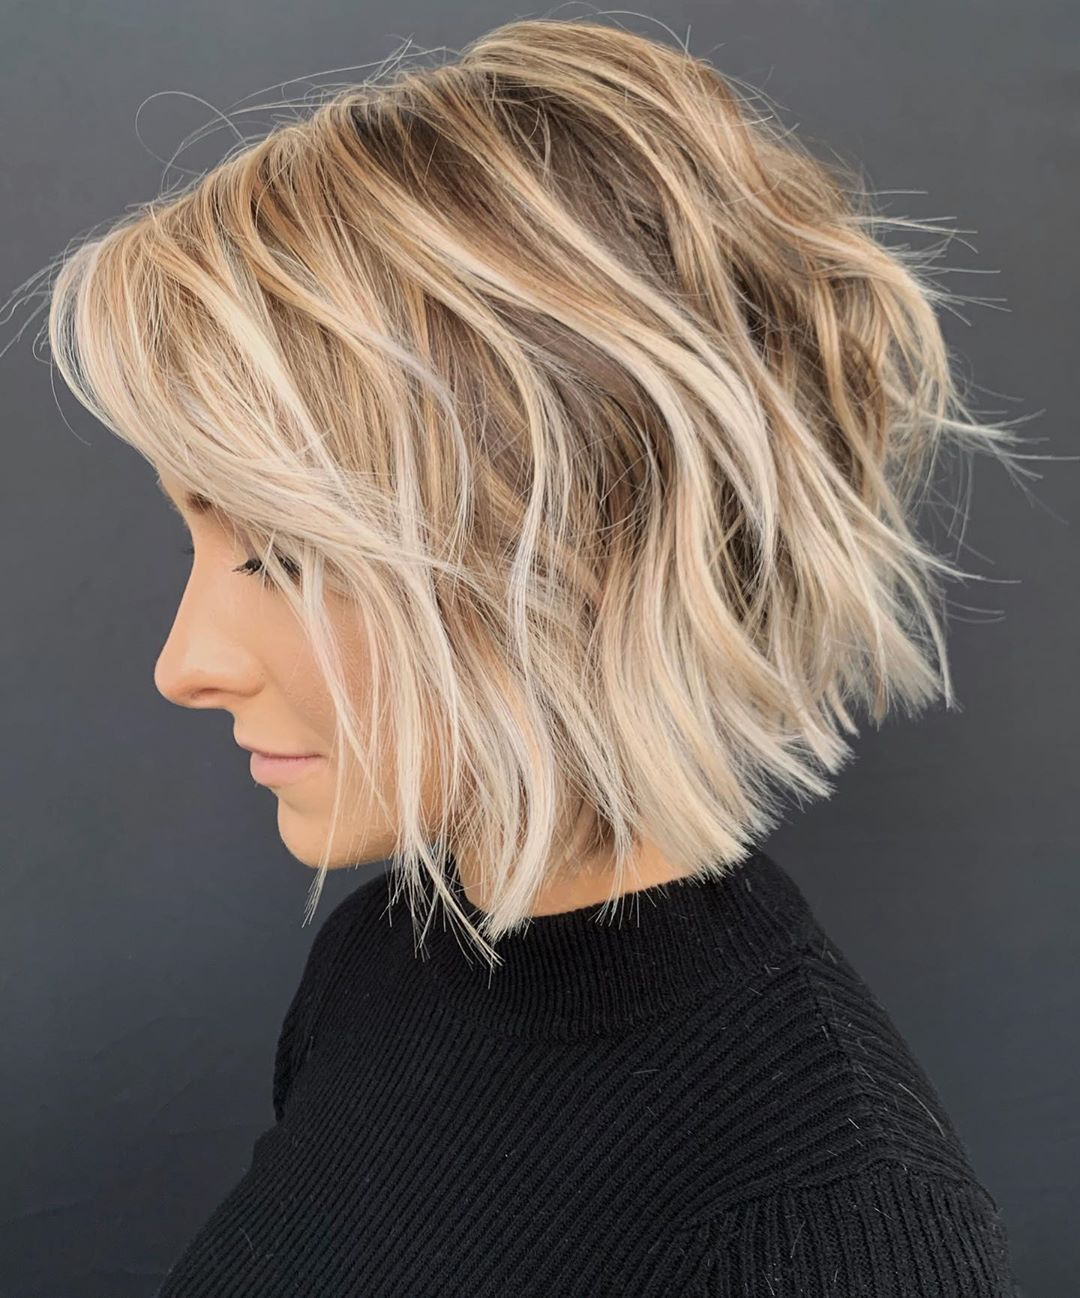 40 Newest Haircut Ideas and Haircut Trends for 2020